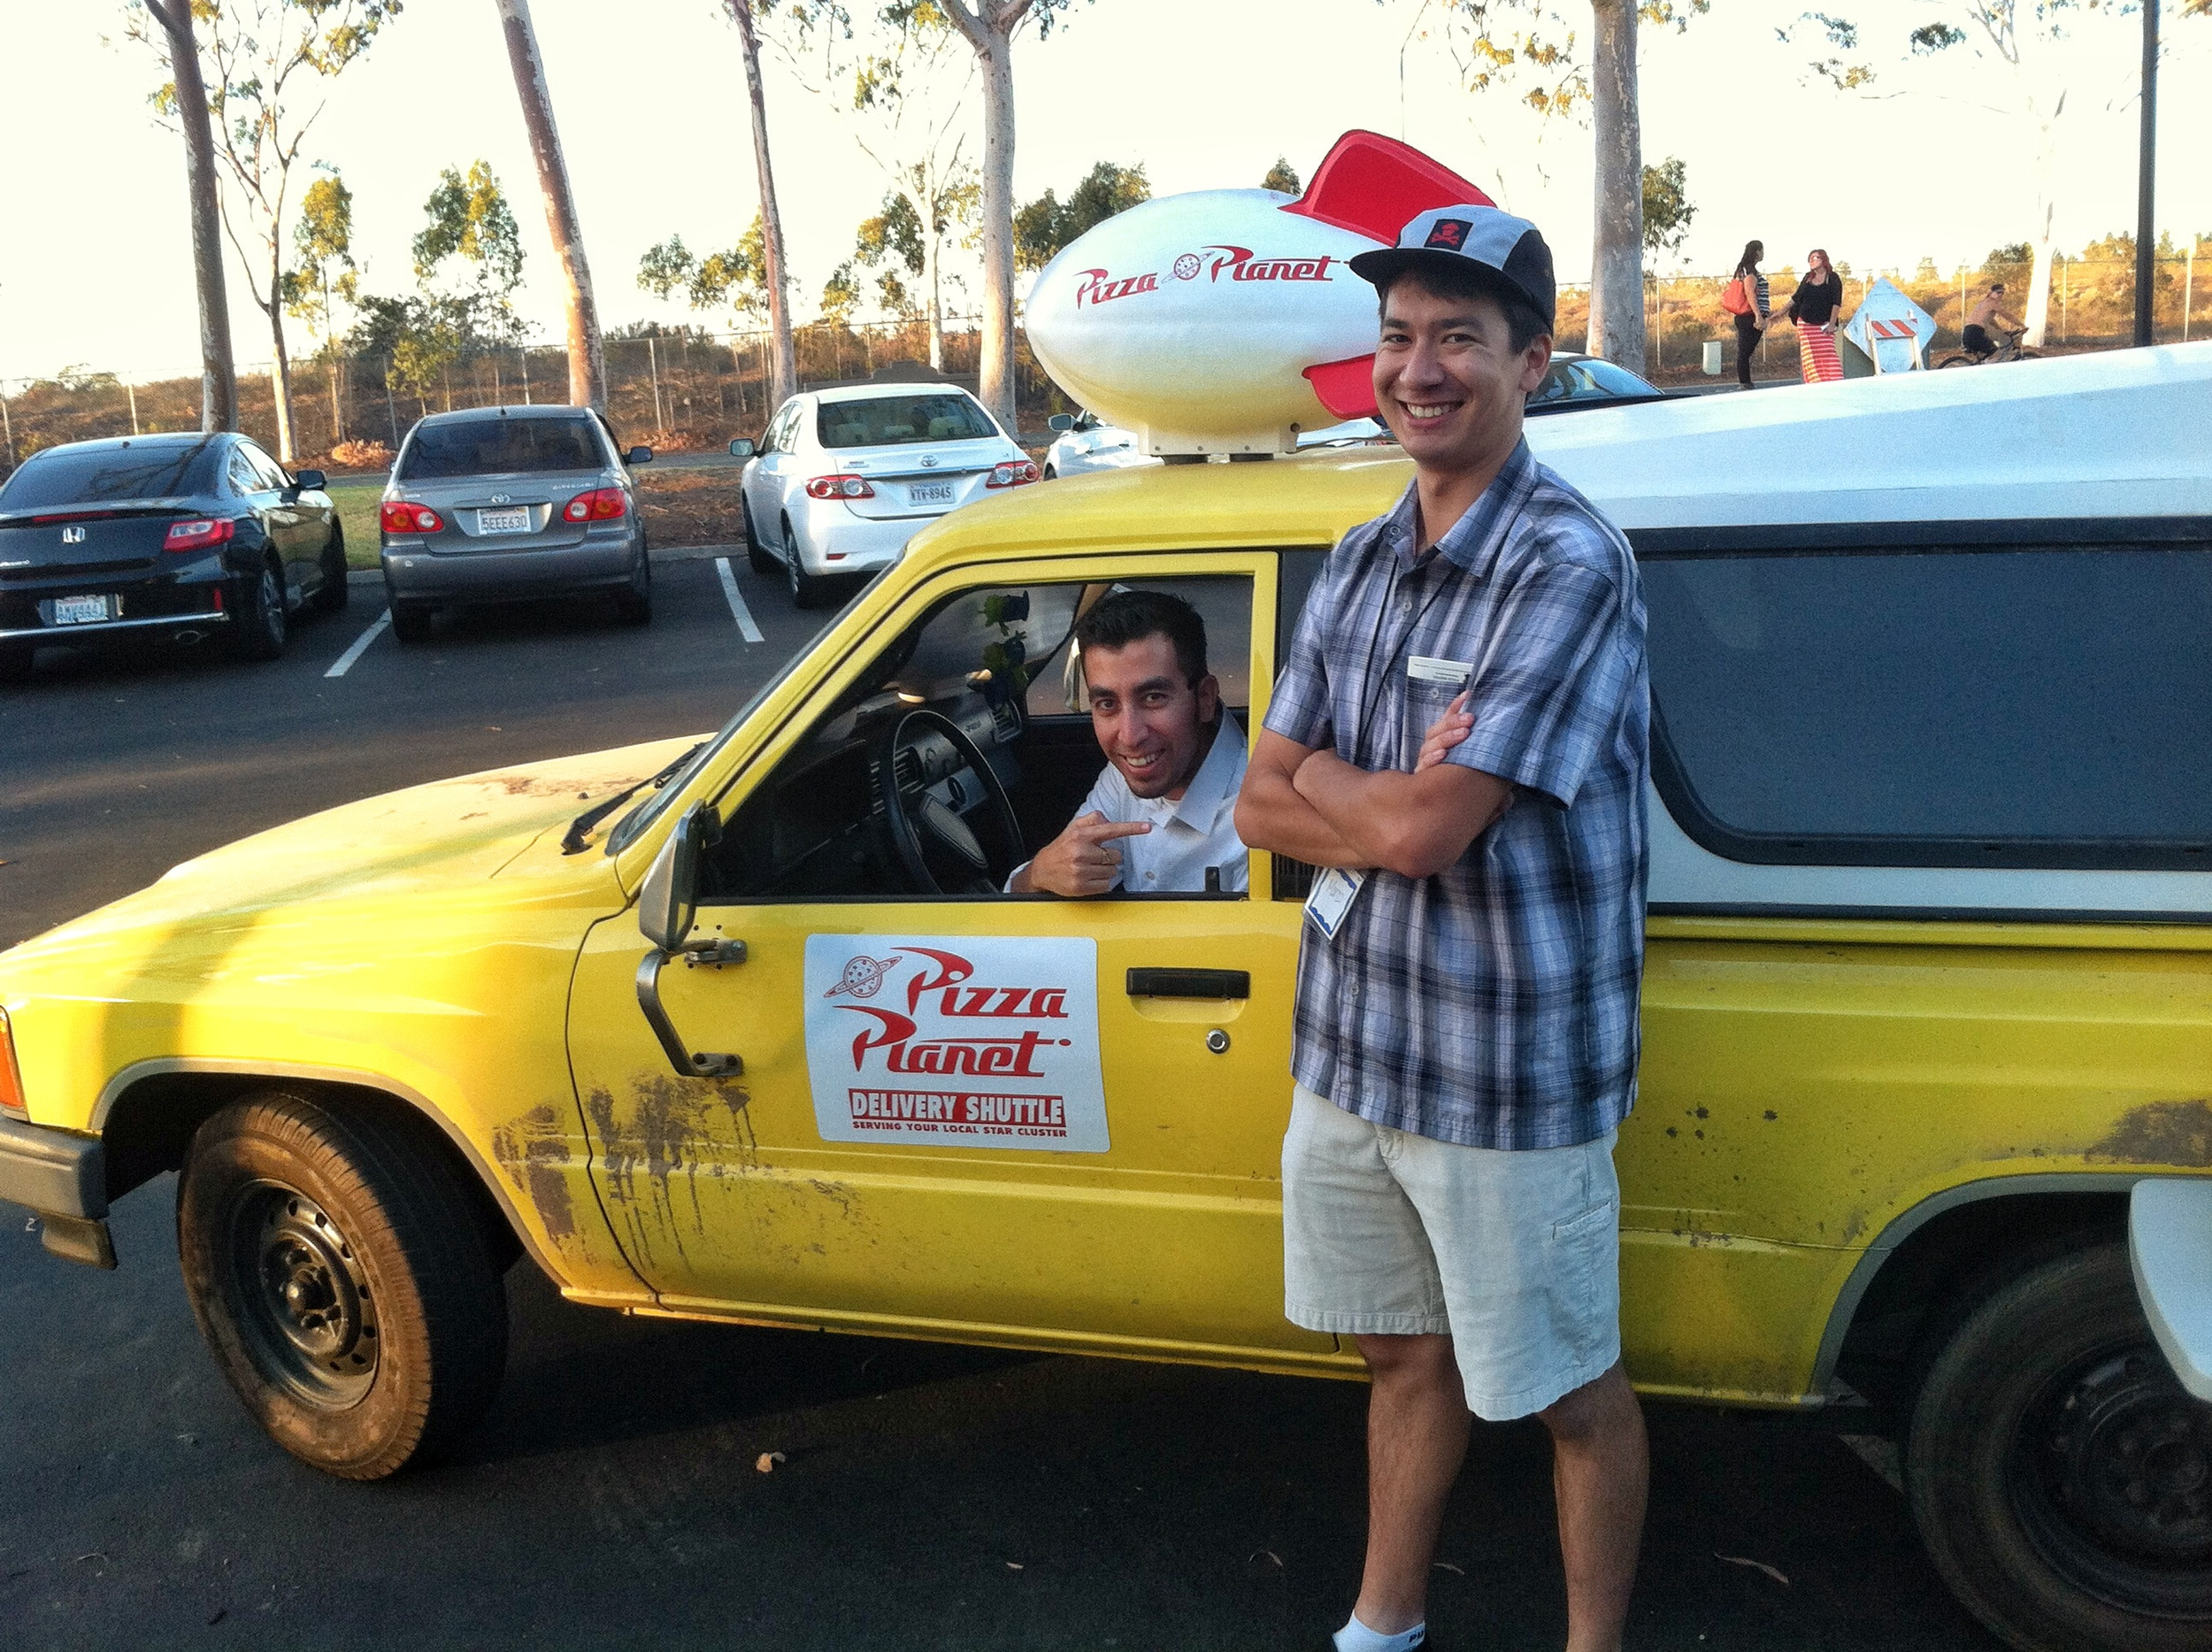 Hanging with my friend Marco and his Pizza Planet Truck.